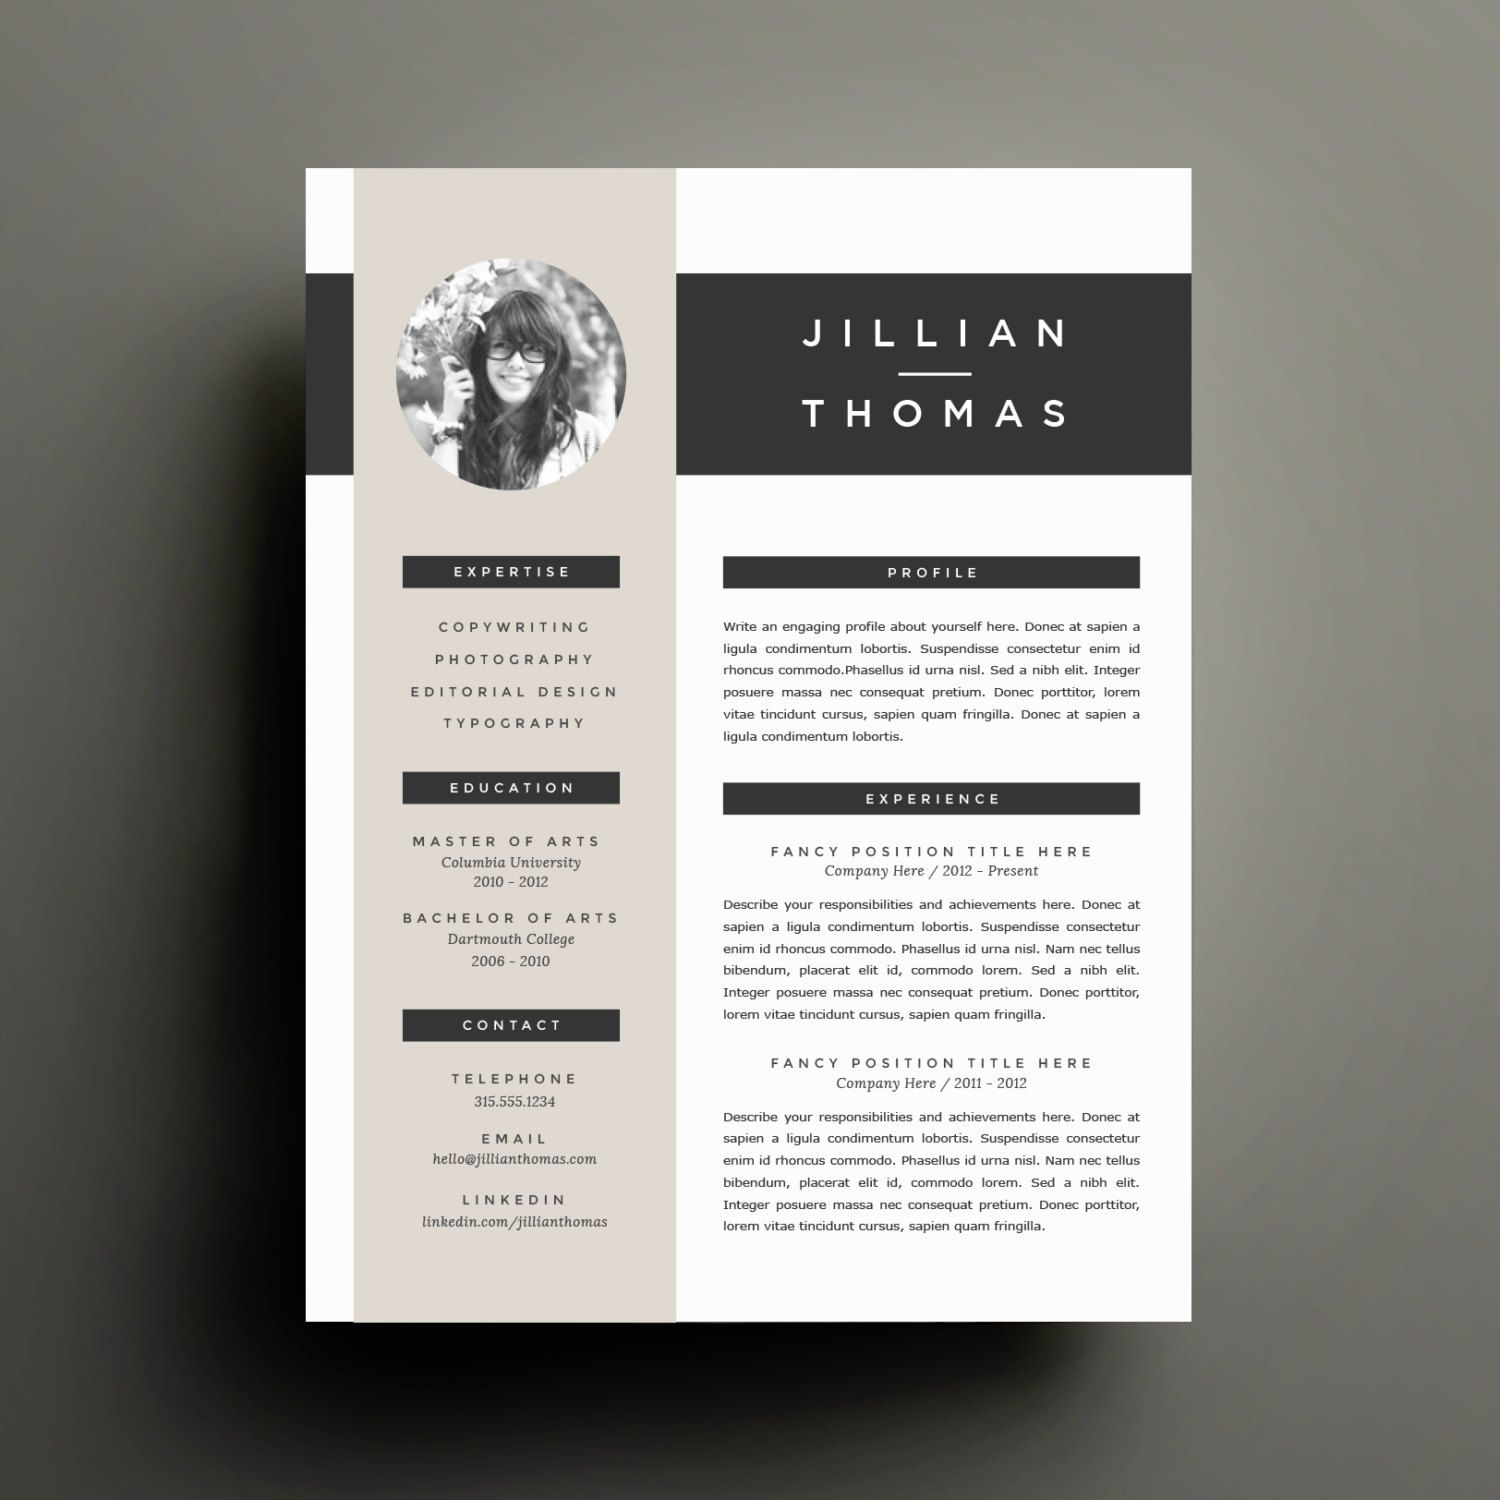 creative resume template and cover letter template for word diy creative resume template and cover letter template for word diy printable resume 4 pack modern 2 page design by refineryresumeco on